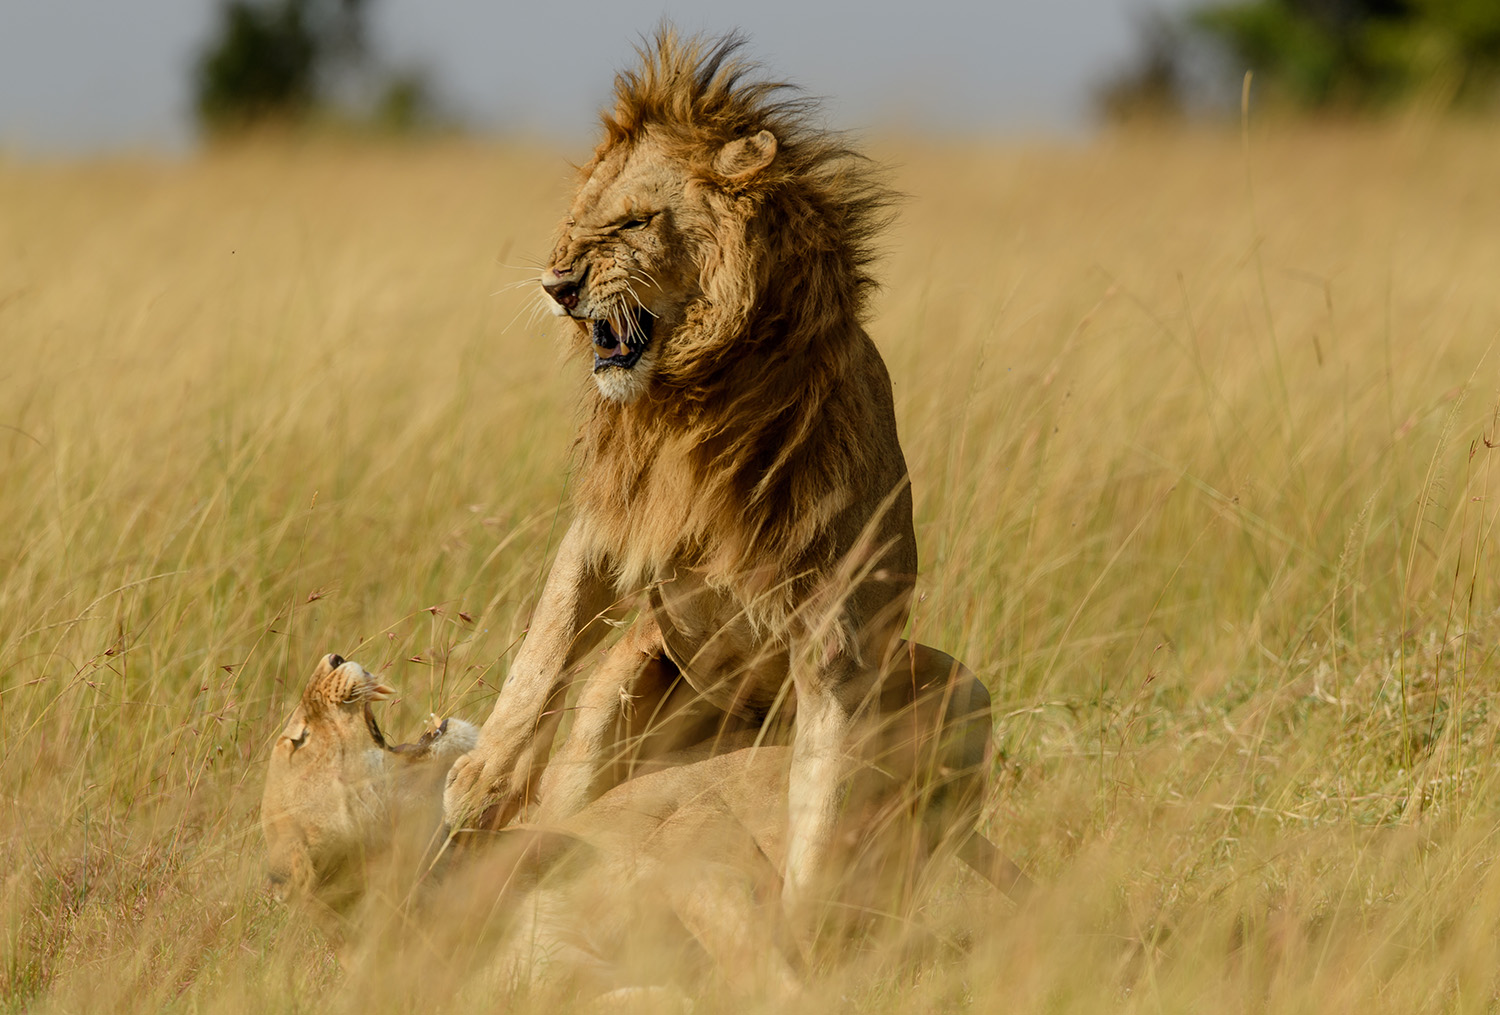 Lions Mating in the Maasai Mara - raw emotion